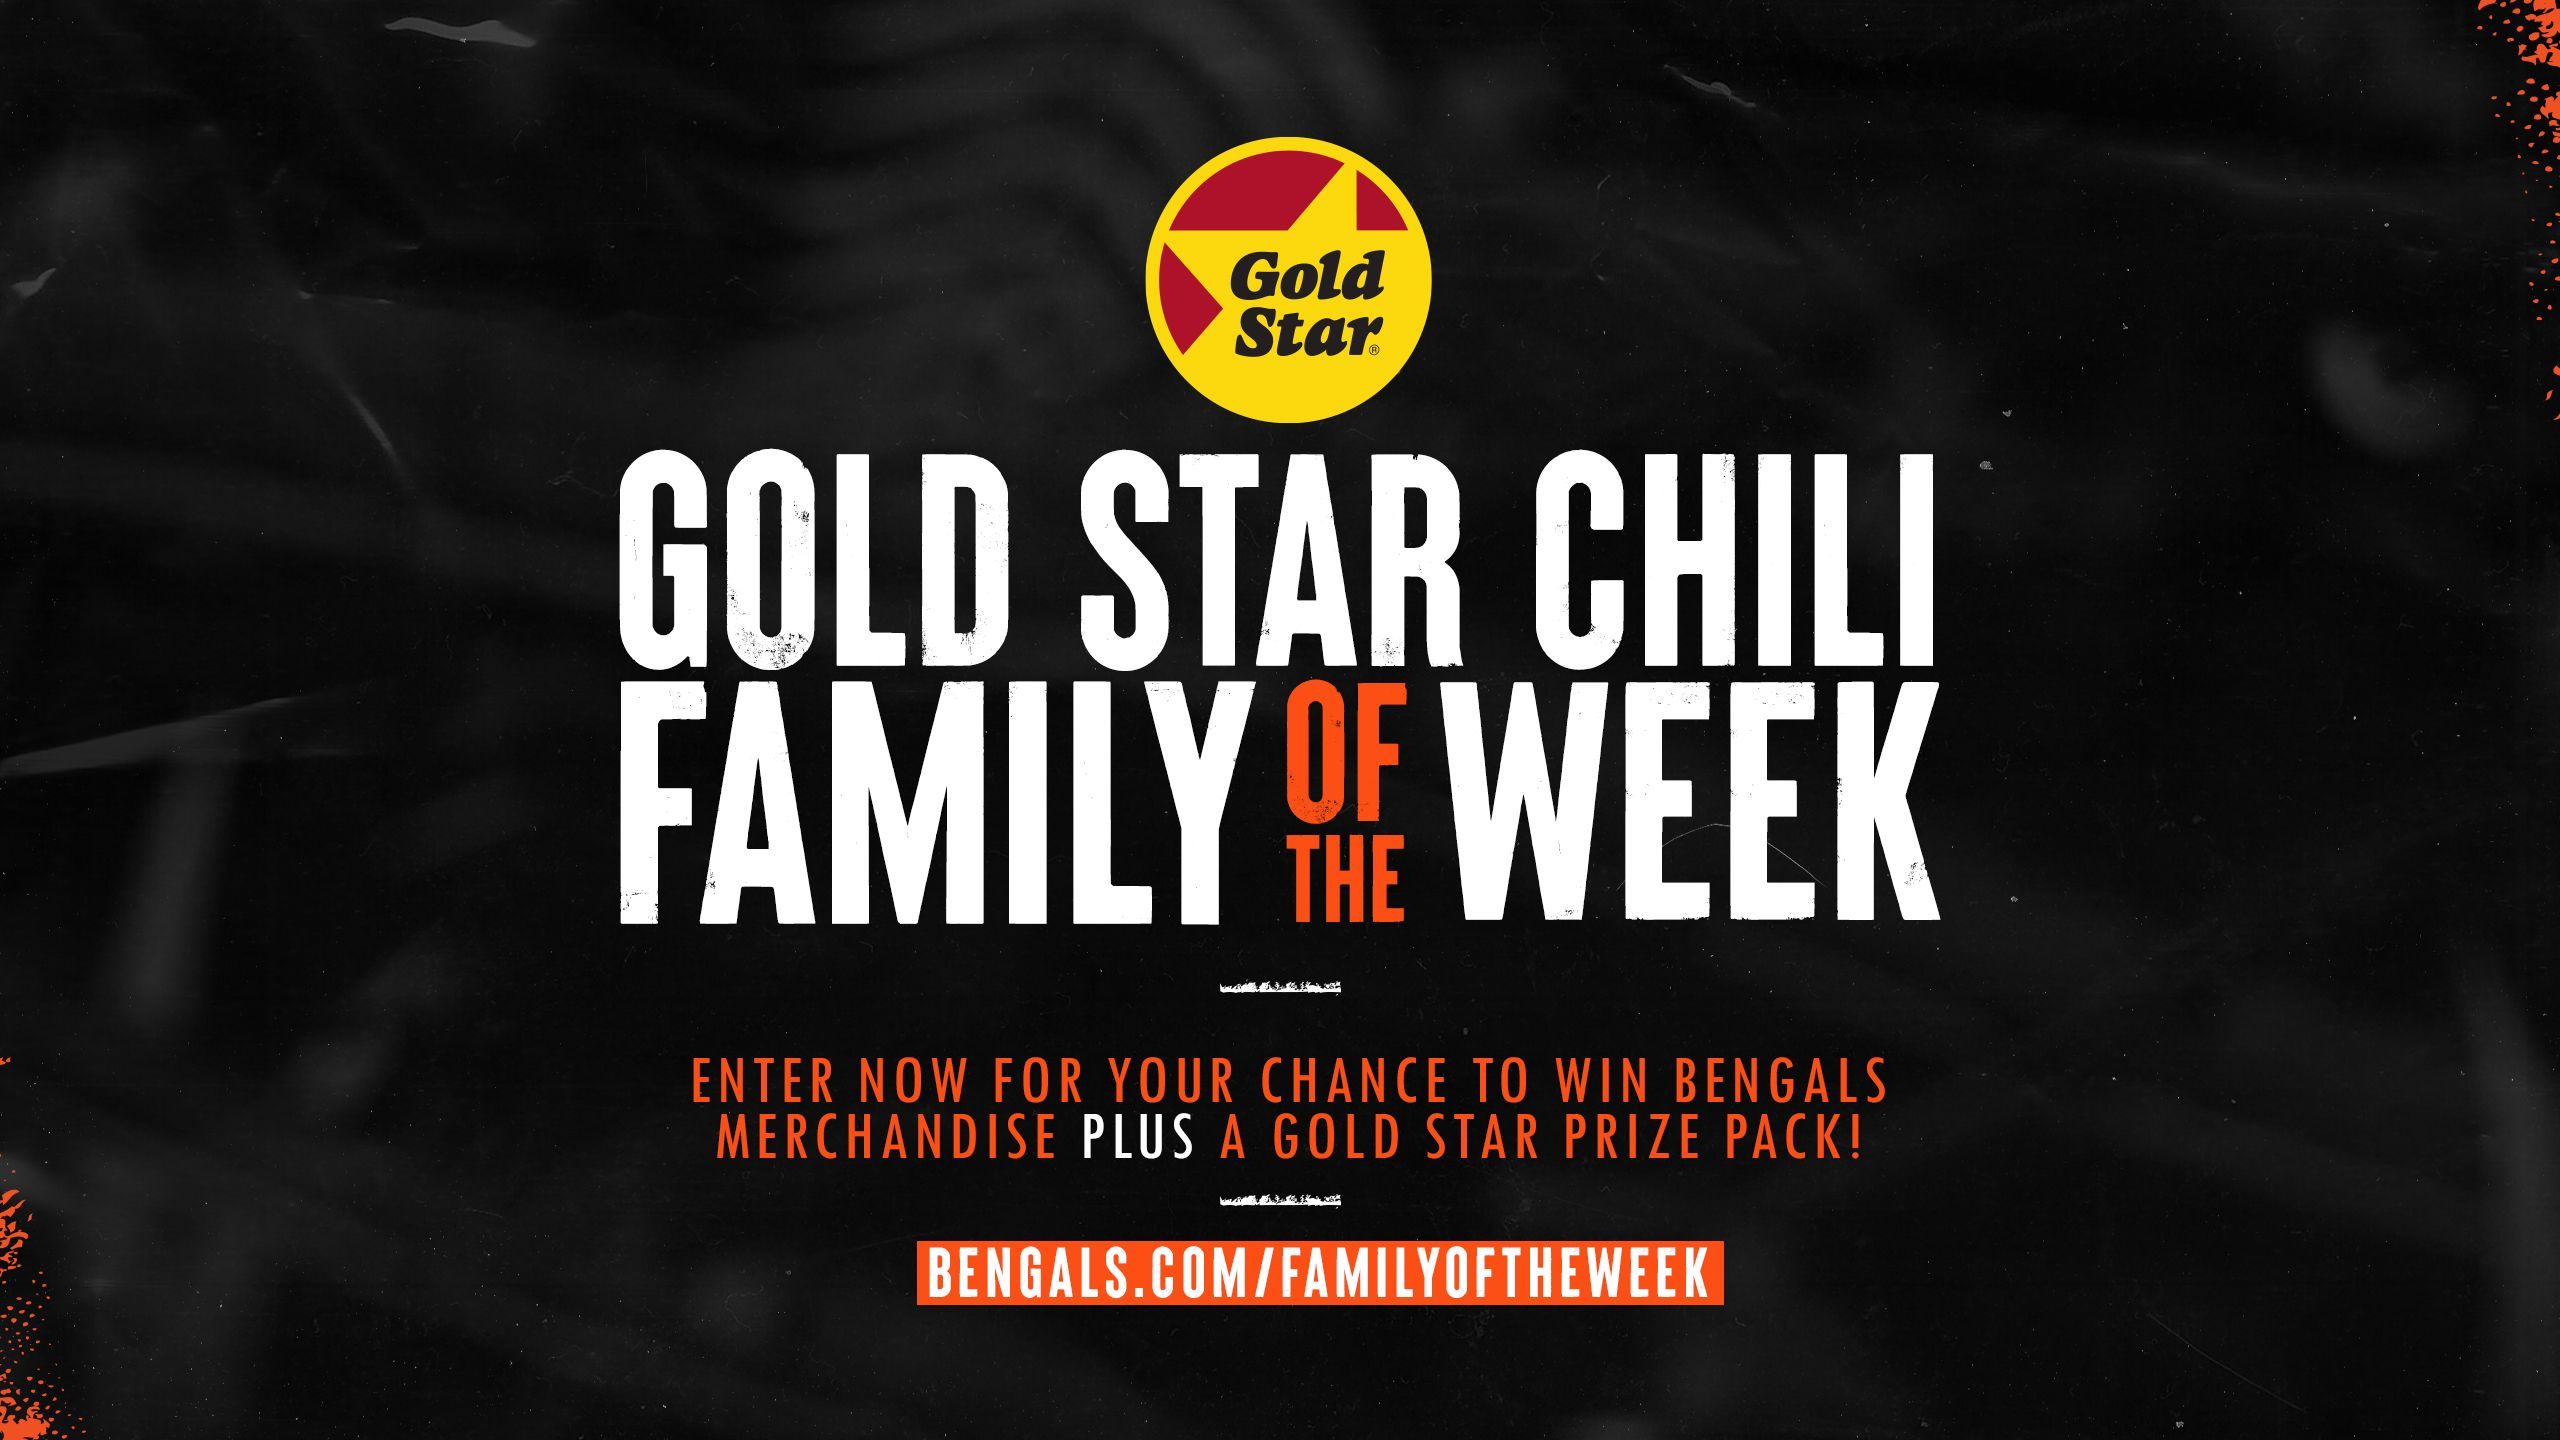 Gold Star Chili Family of the Week